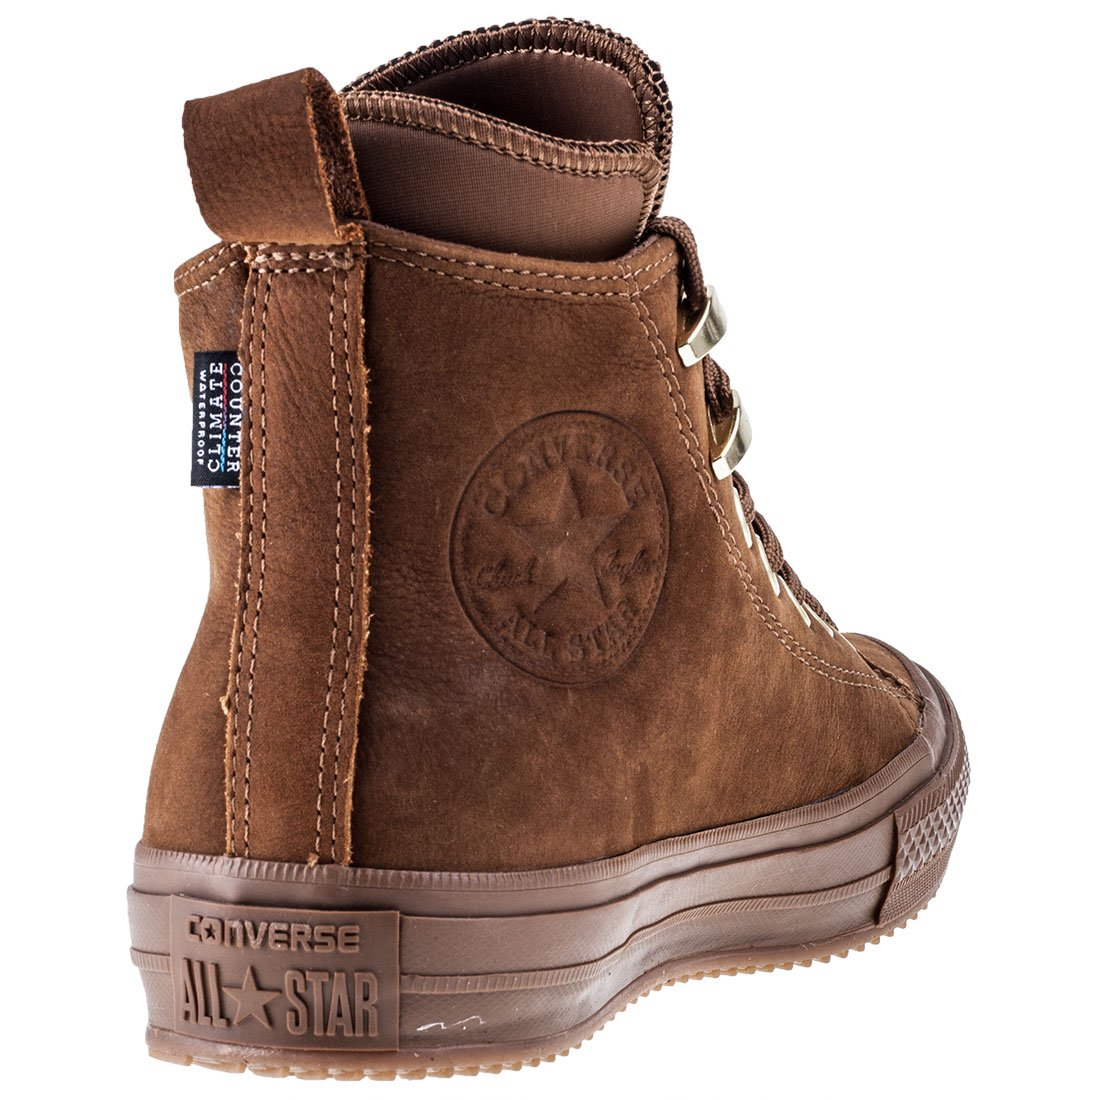 Basket Converse Ctas Wp Boot Hi 557946c Brown gniRWbrSgo